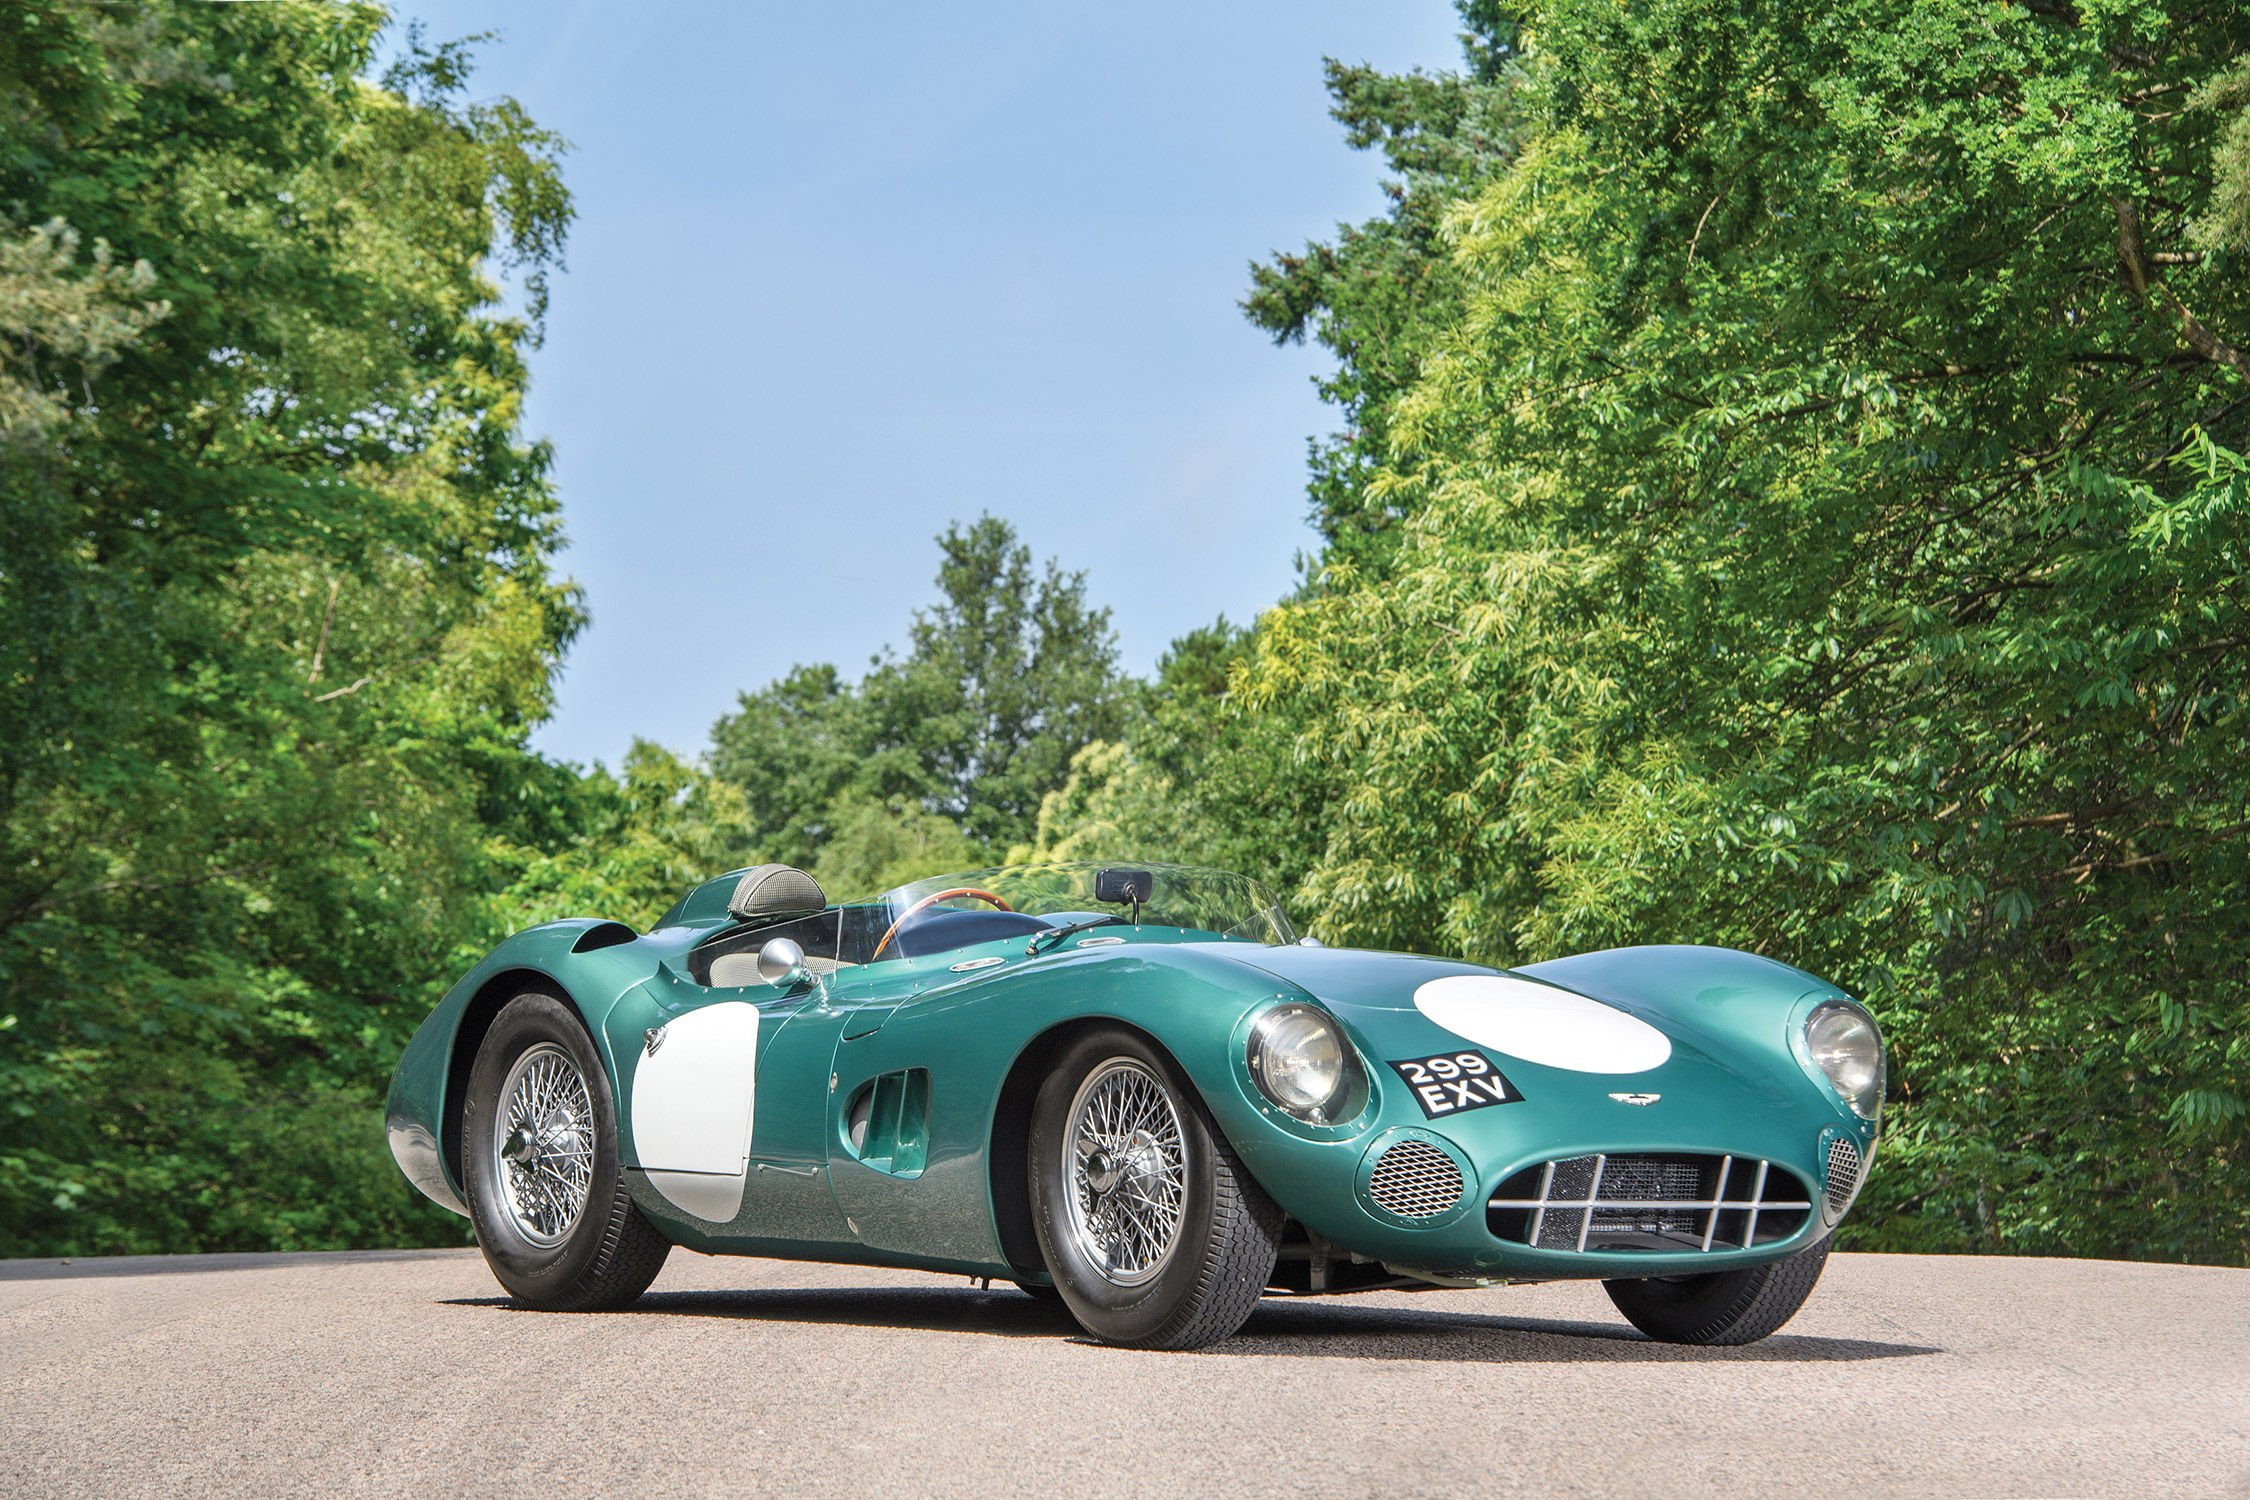 Video 10 Vintage Cars Auctioned For Insane Prices Image 4